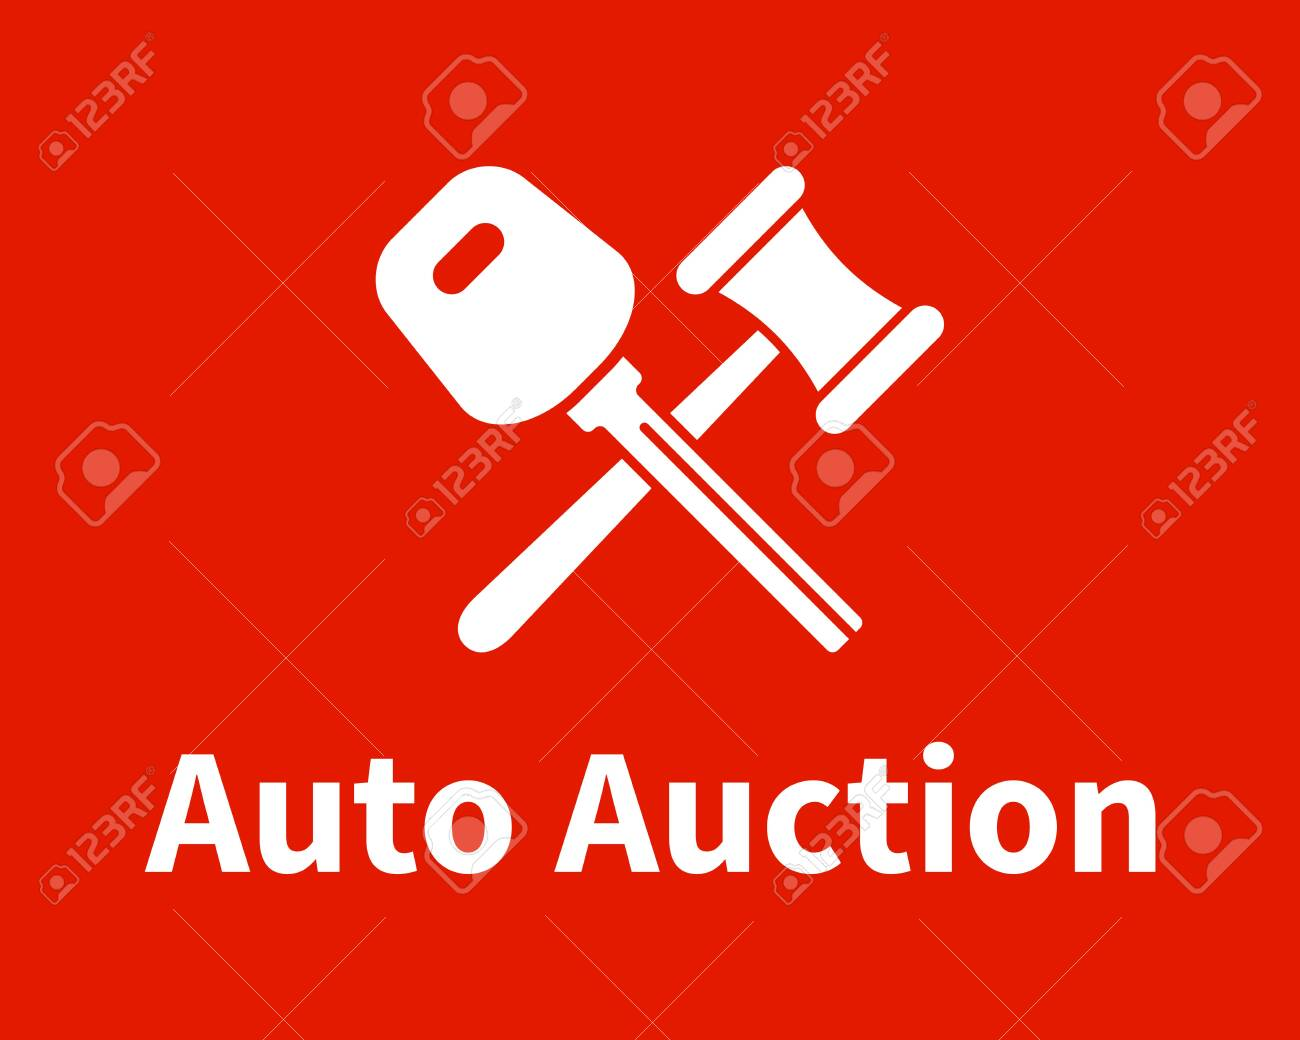 Car Auction Logo Design Royalty Free Cliparts Vectors And Stock Illustration Image 129686422